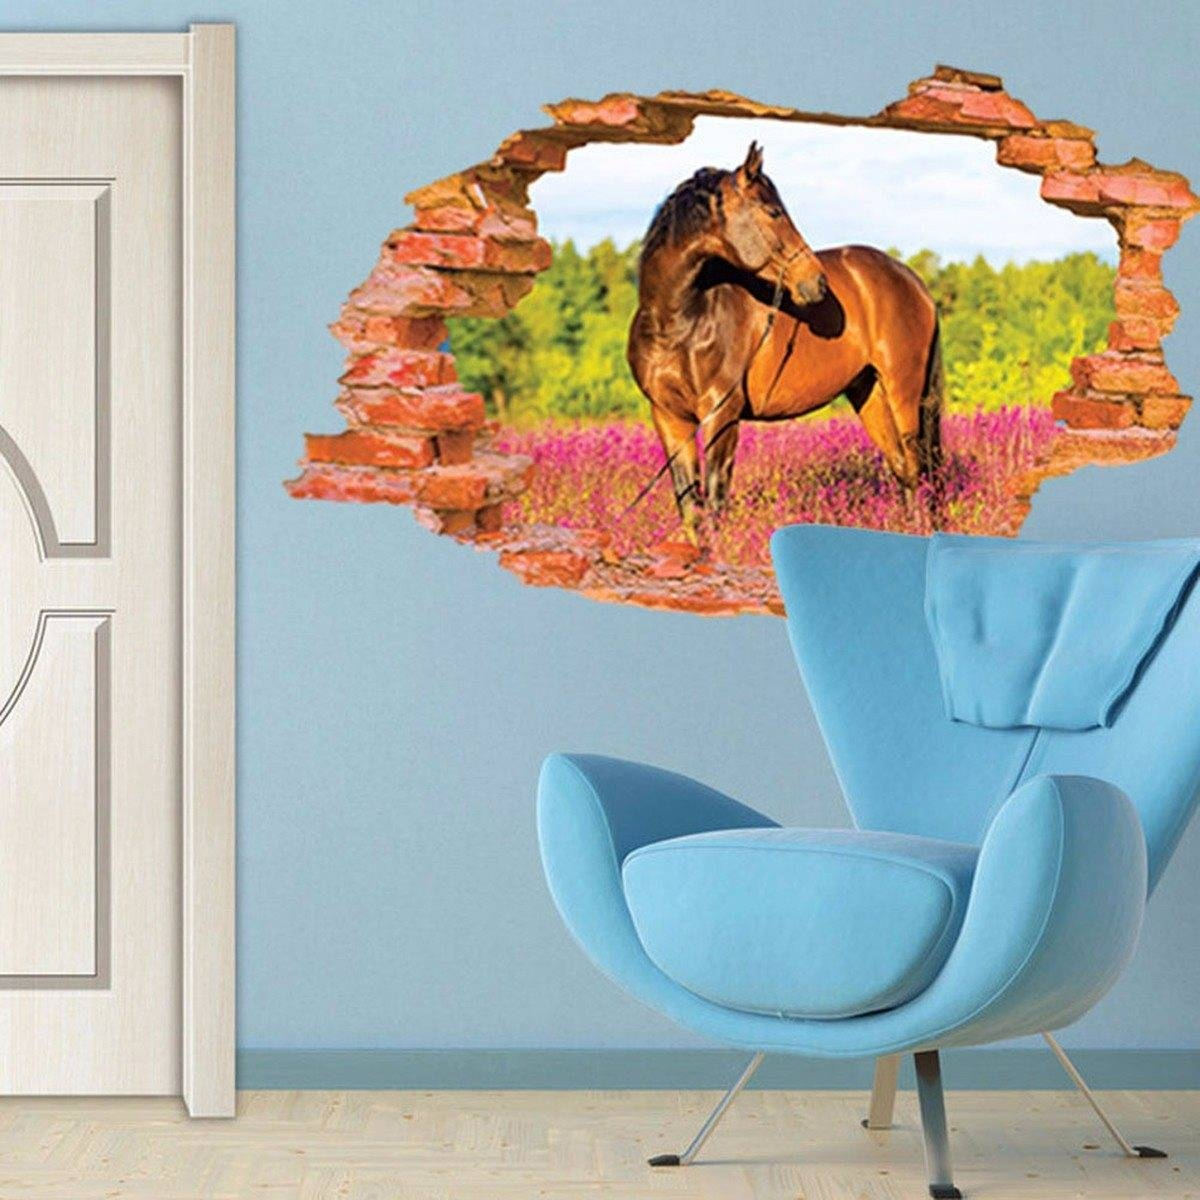 Removable Vinyl 3d Broken Horse Animal Wall Stickers Landscape Within Most Recently Released Animals 3d Wall Art (View 7 of 20)